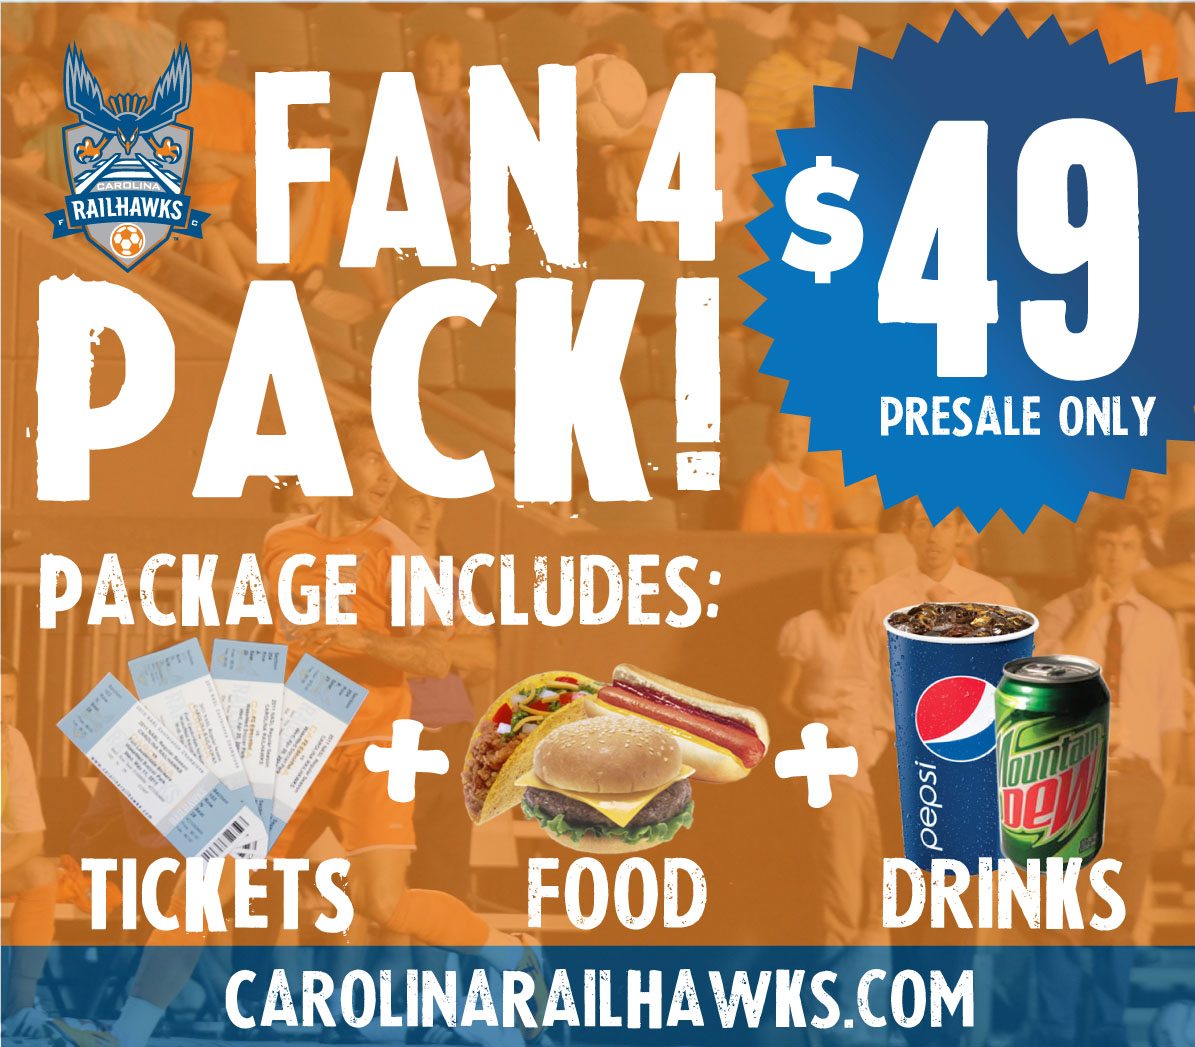 To purchase your Fan 4 Pack: